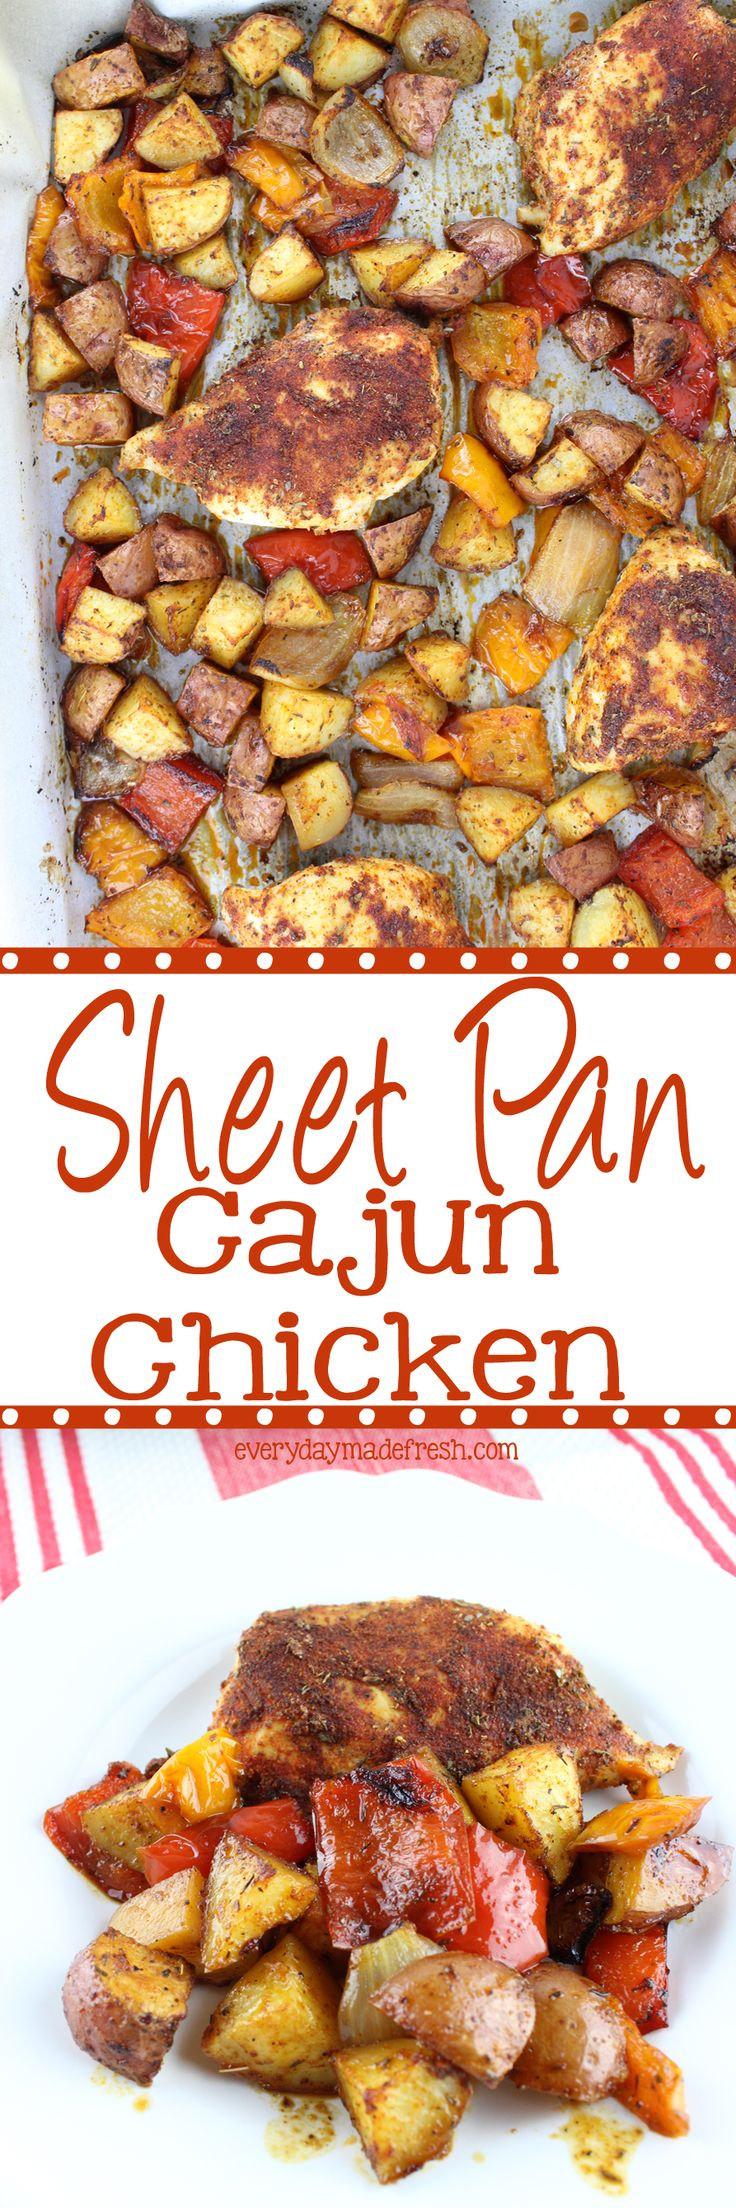 A sheet pan lined with foil for virtually no clean-up, chicken breasts, potatoes, peppers, and onions topped with a Cajun spice mix make this Sheet Pan Cajun Chicken a week-night favorite! | EverydayMadeFresh.com http://www.everydaymadefresh.com/sheet-pan-cajun-chicken-3-2/